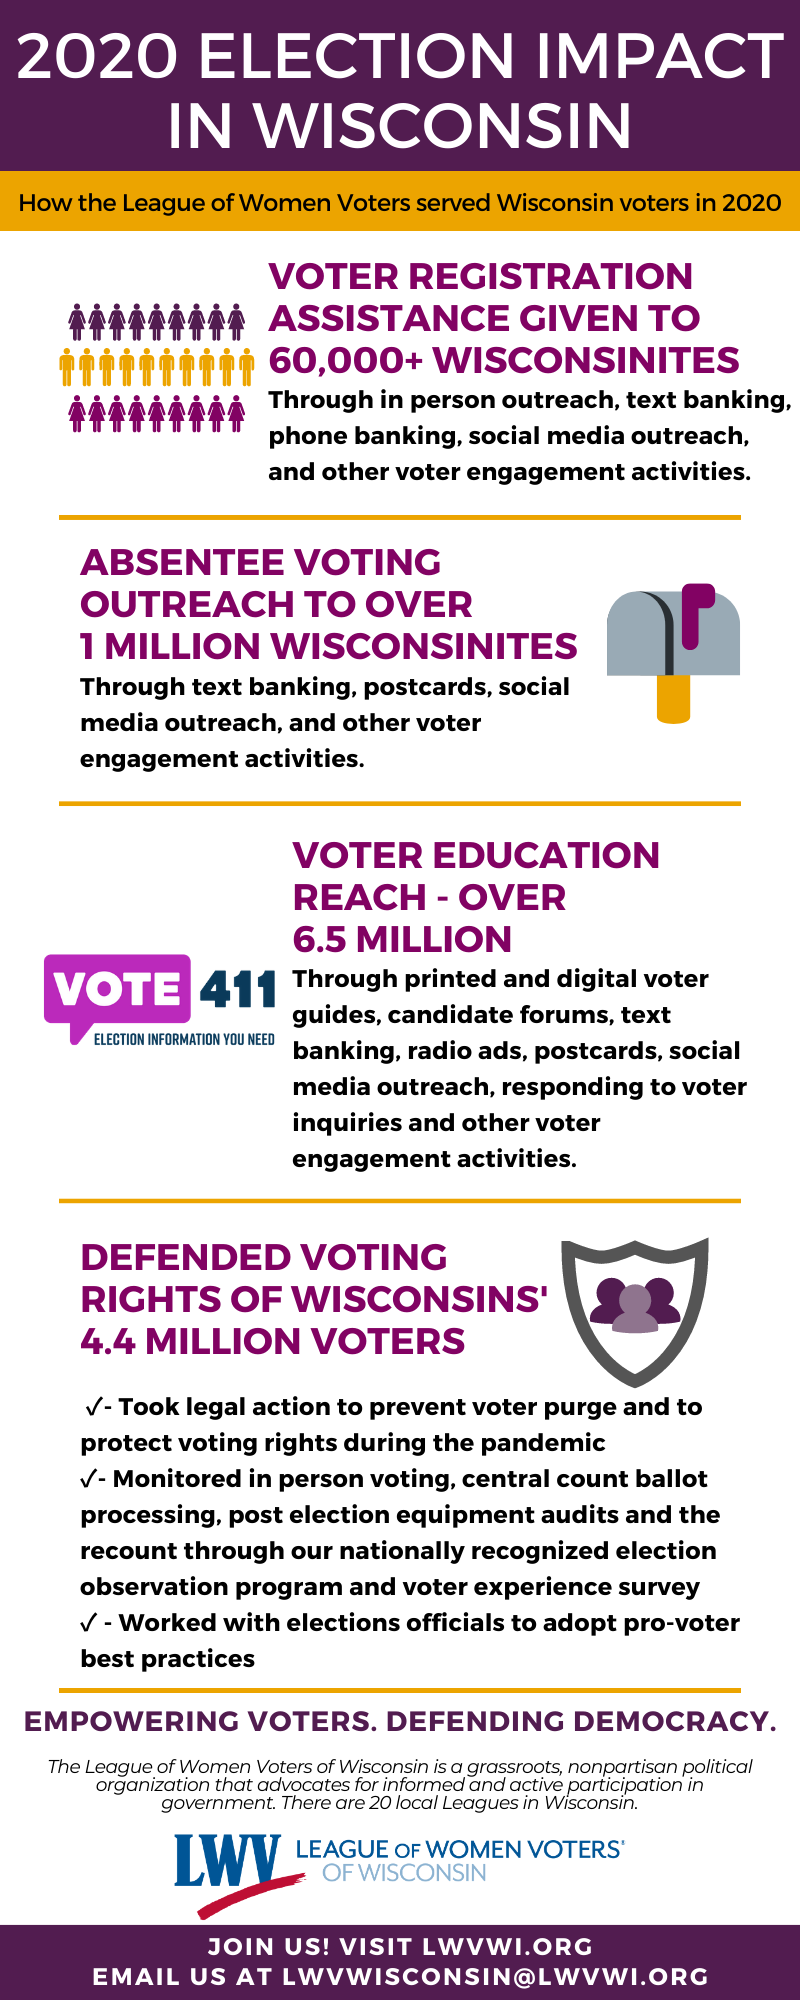 League of Women voters 2020 election impact in Wisconsin